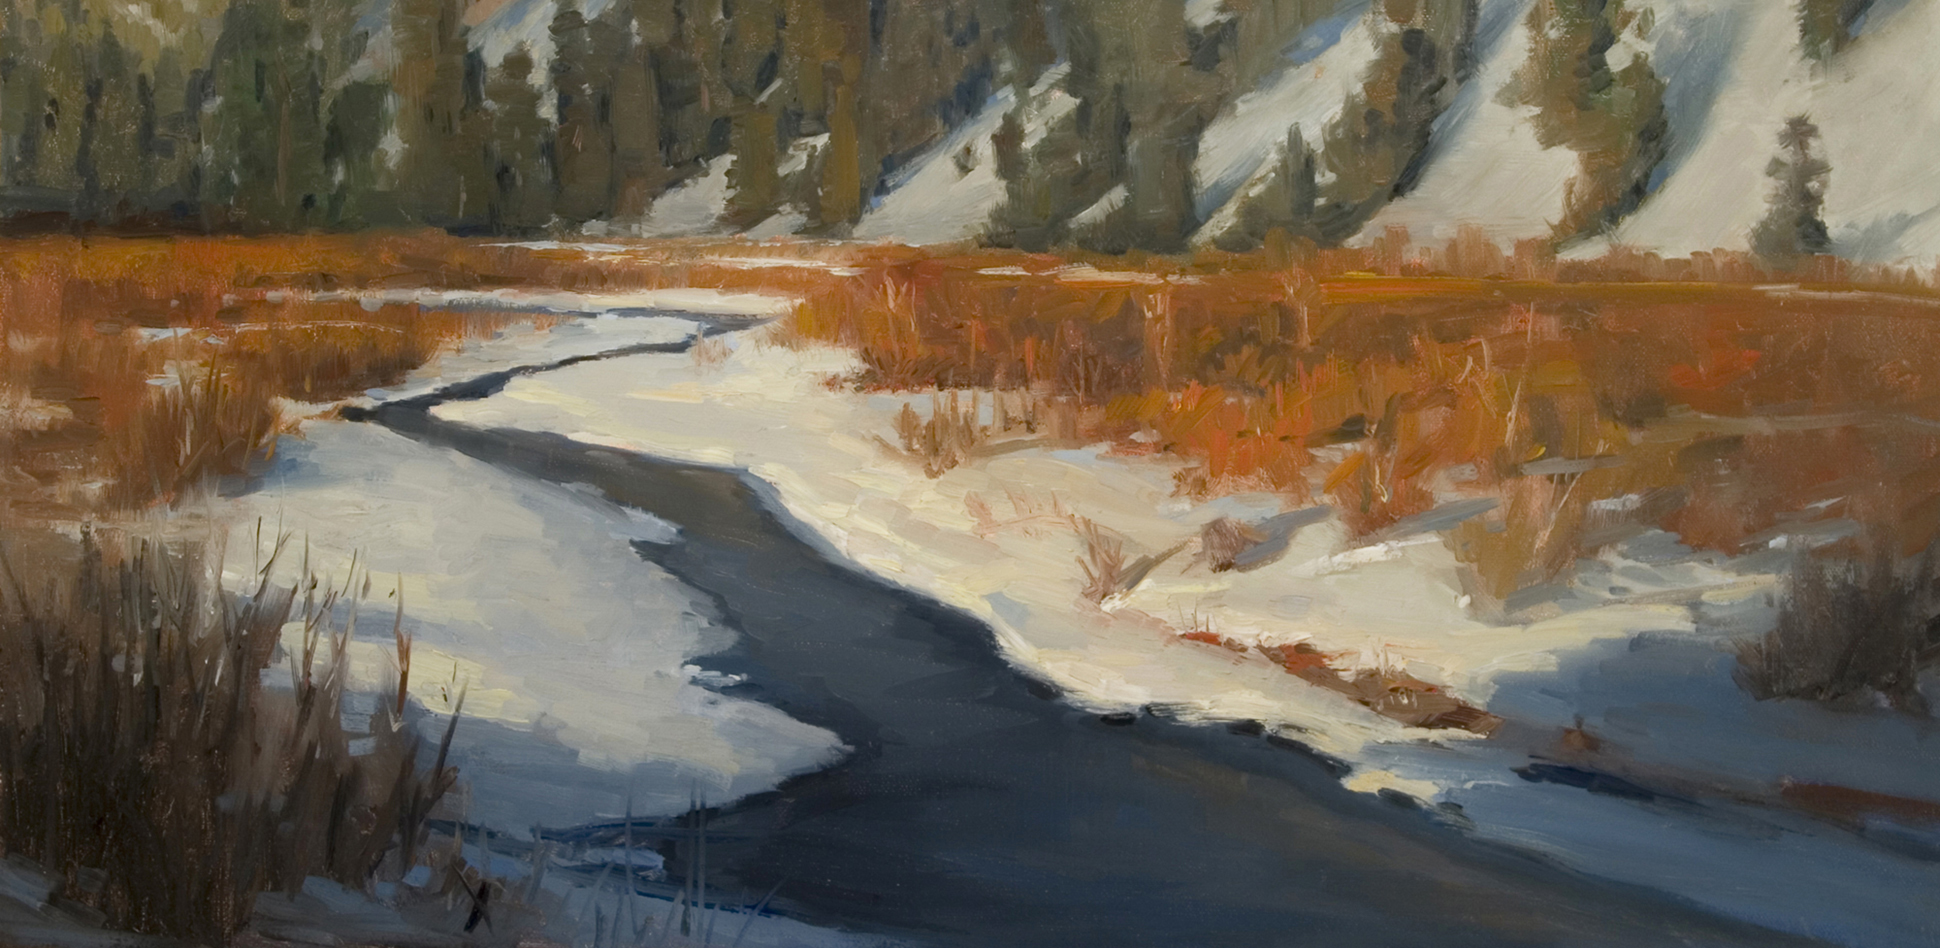 Delores Headwaters painting by artist Peter Campbel